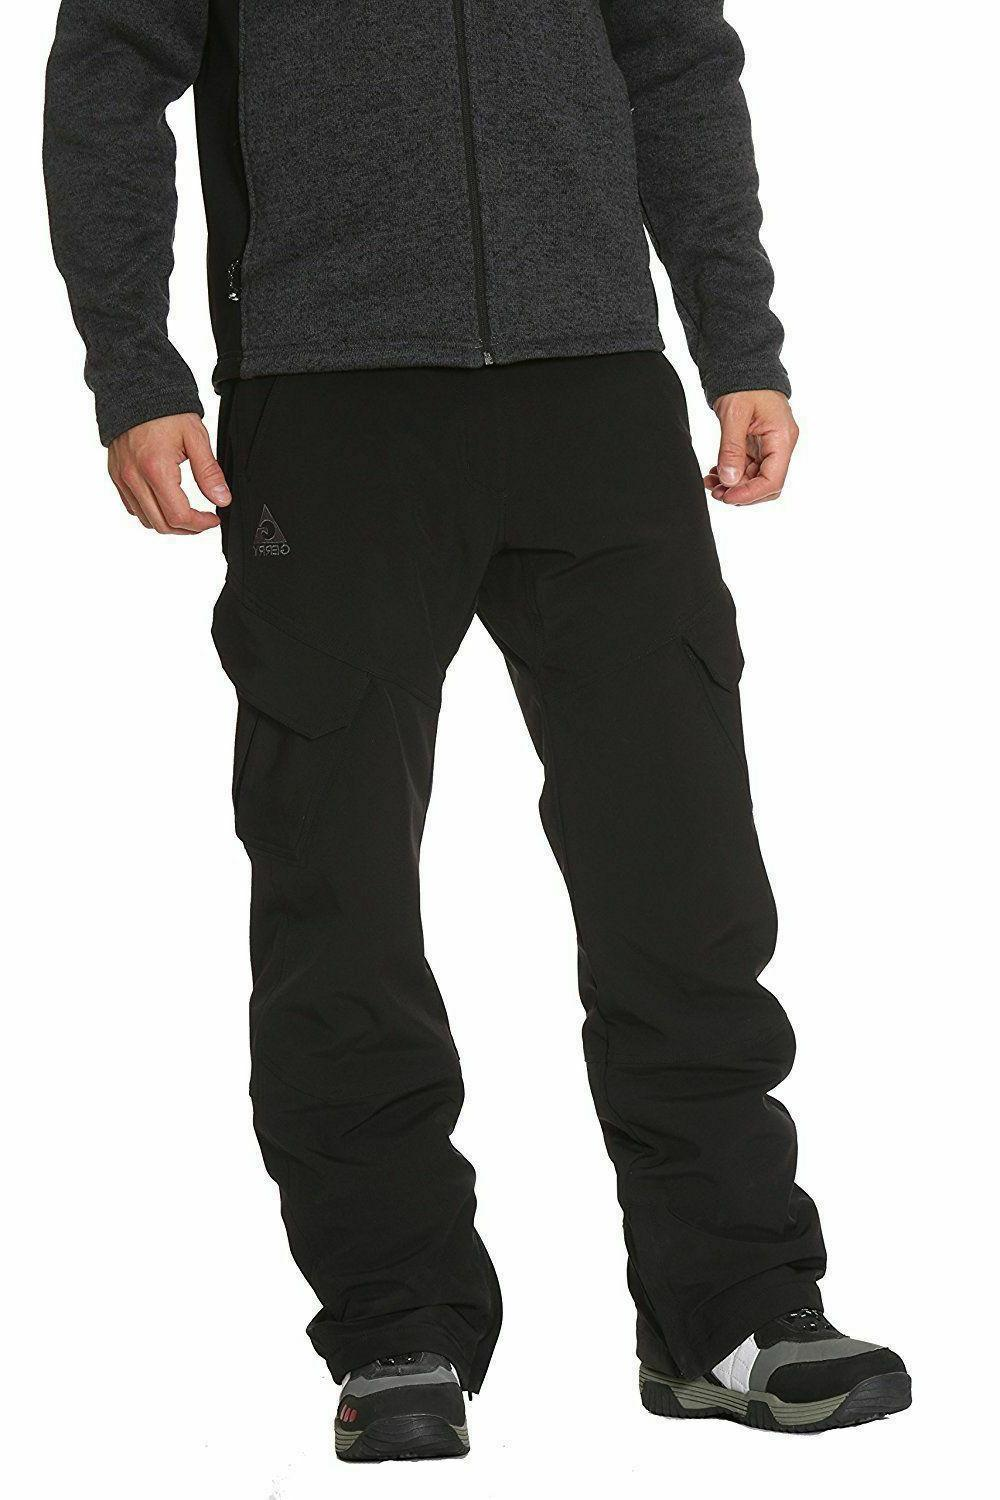 *NWT*Gerry Men's Snow-Tech Boarder Way